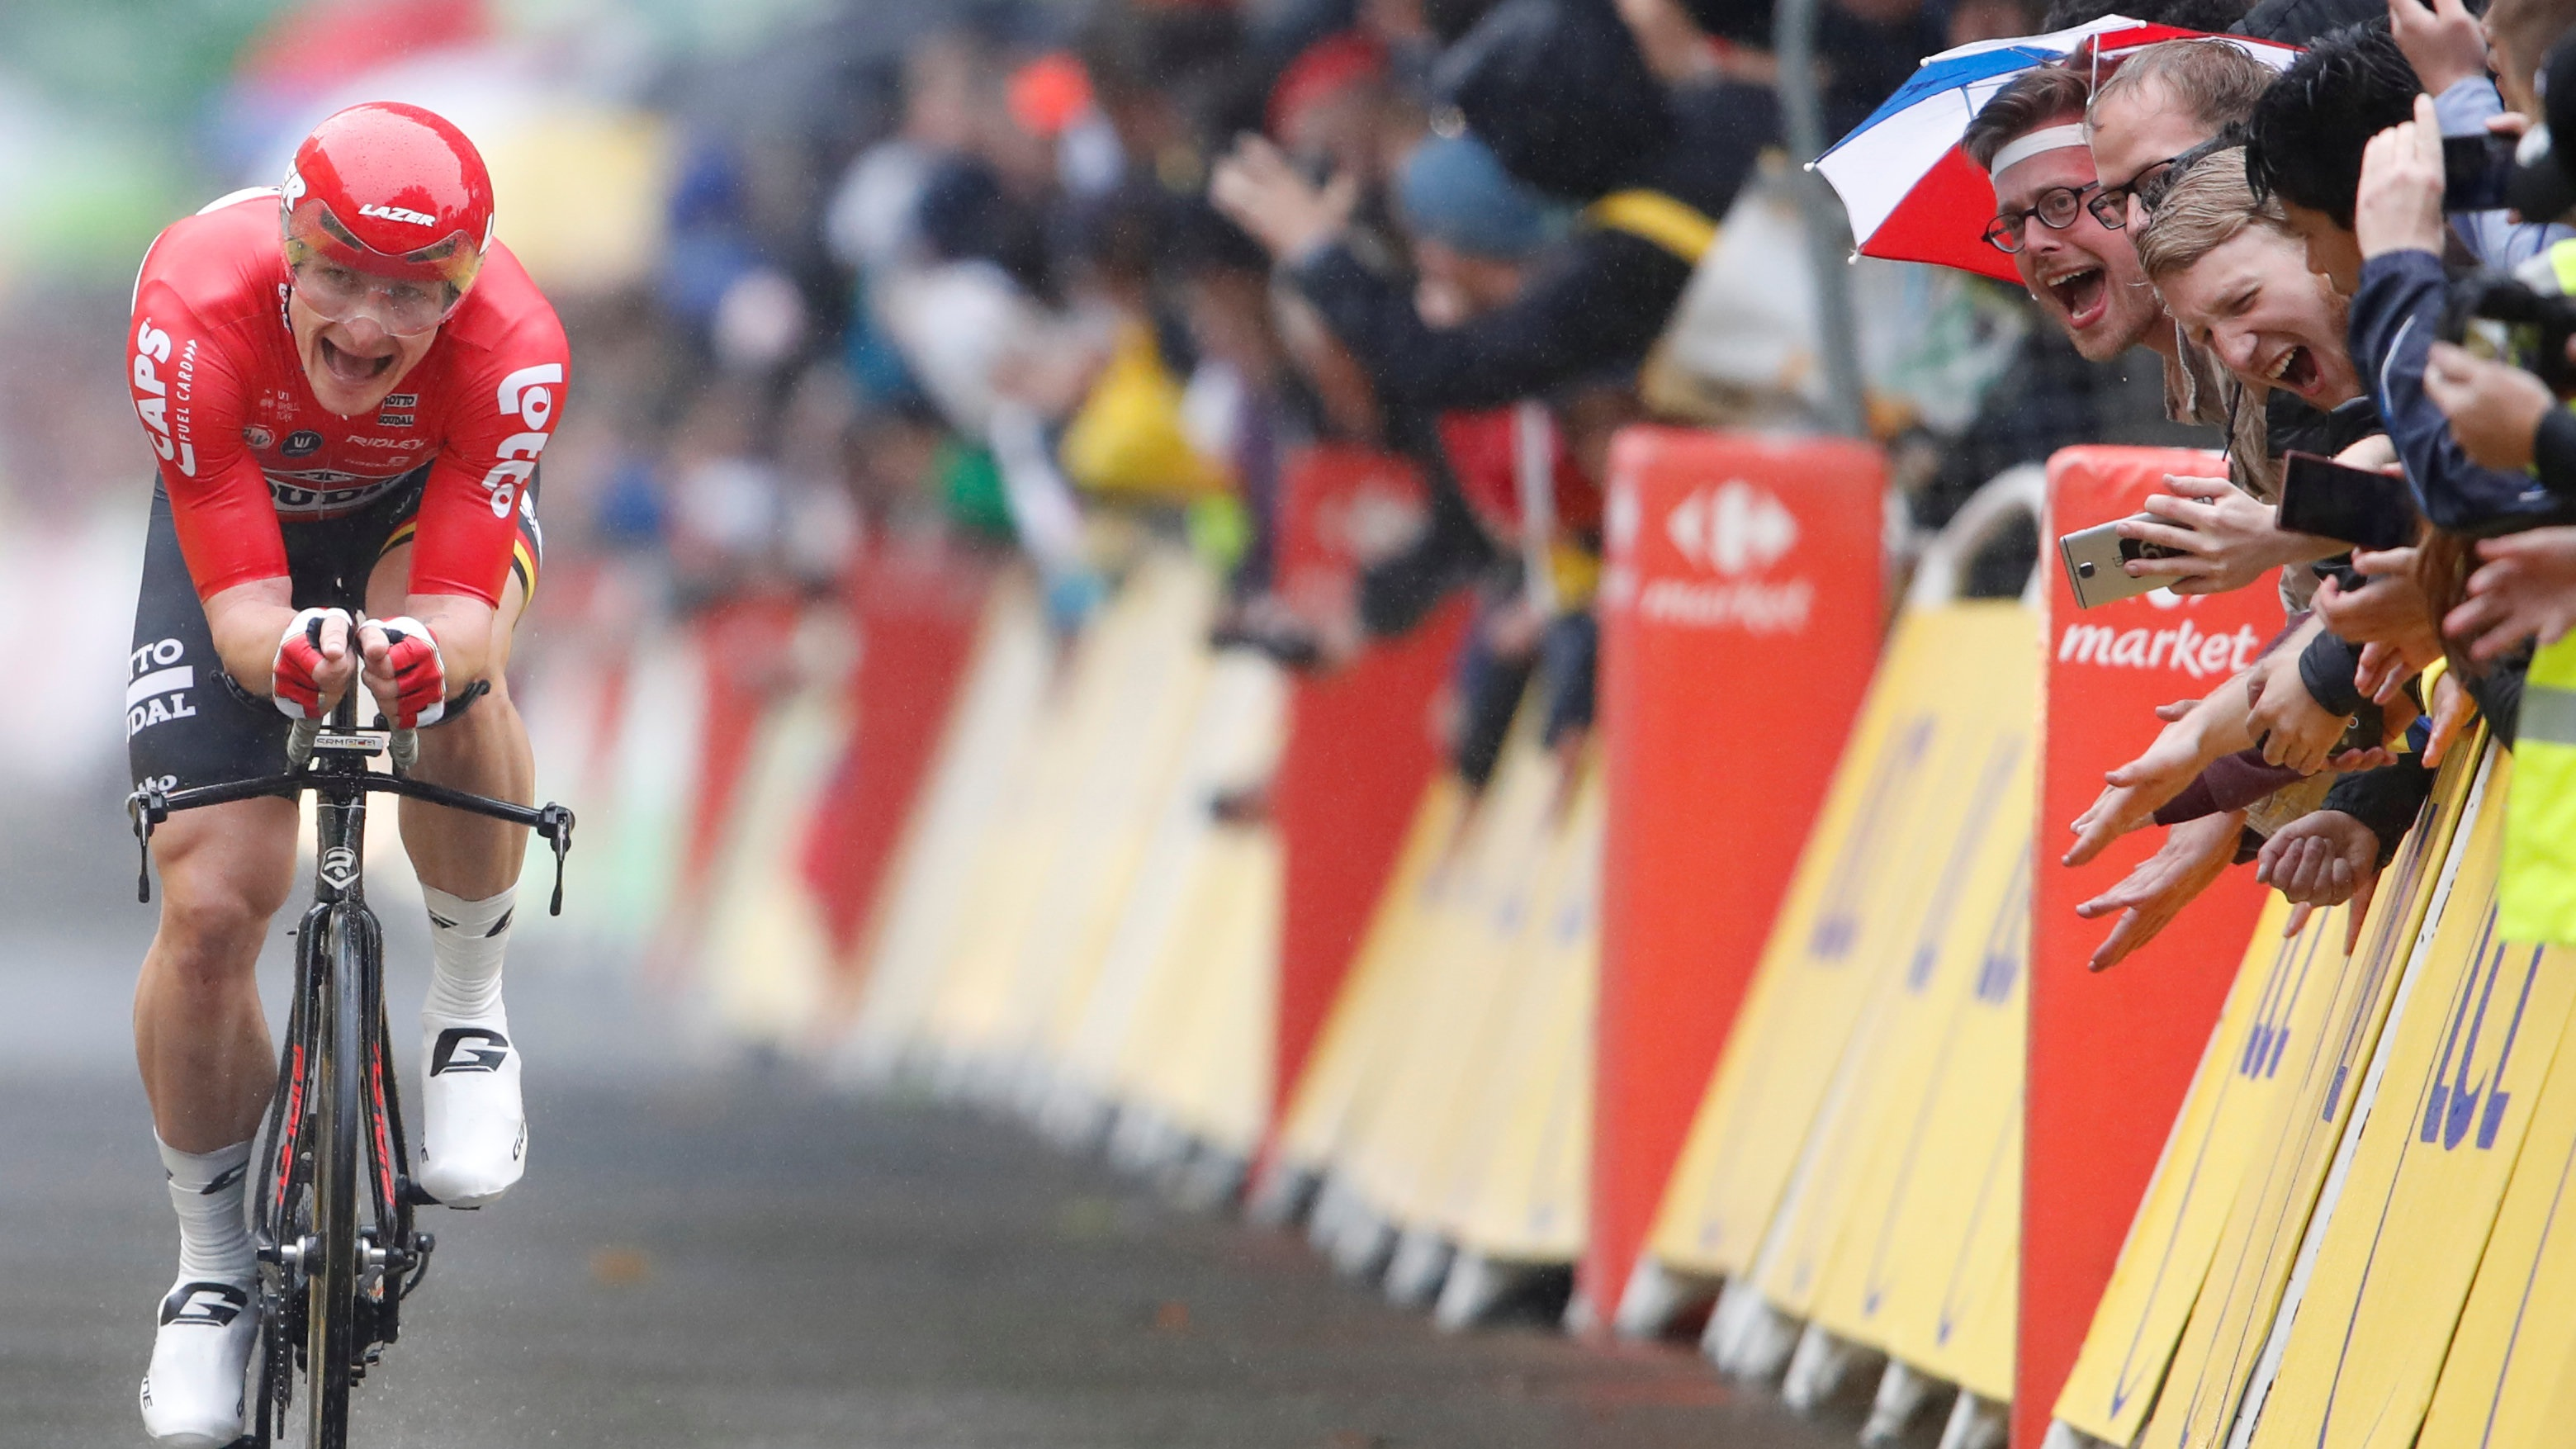 Tour de france stage 7 betting tips irish champion stakes 2021 betting